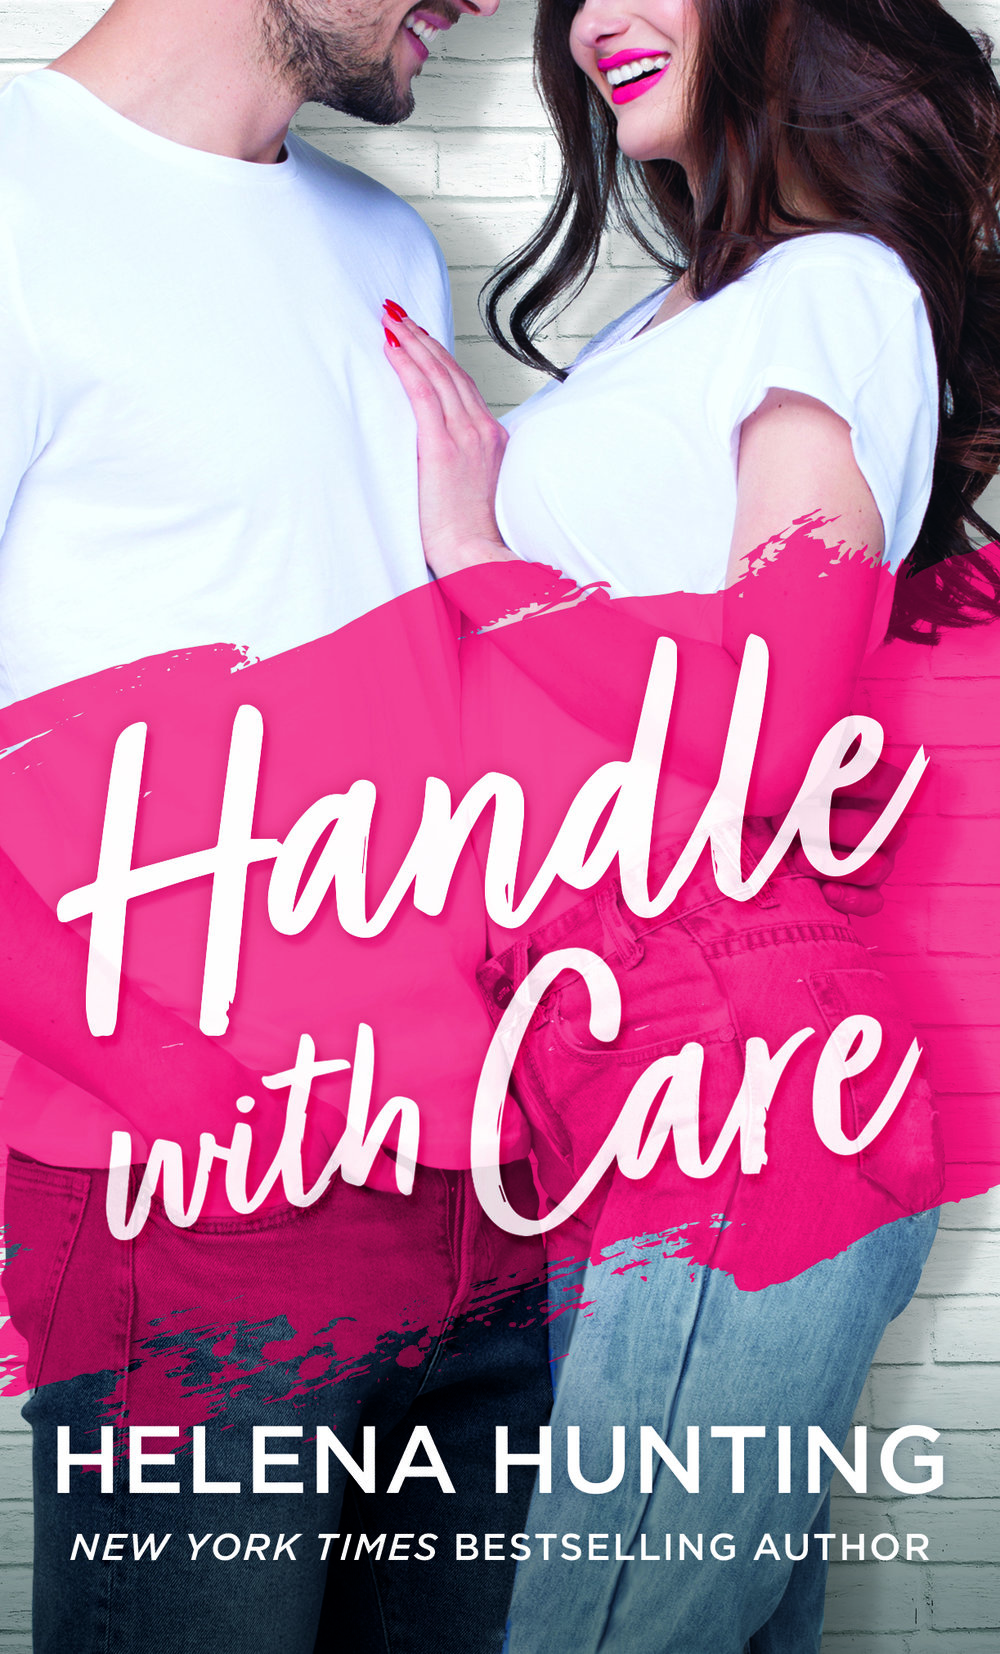 12_13_Handle With Care (1).jpg